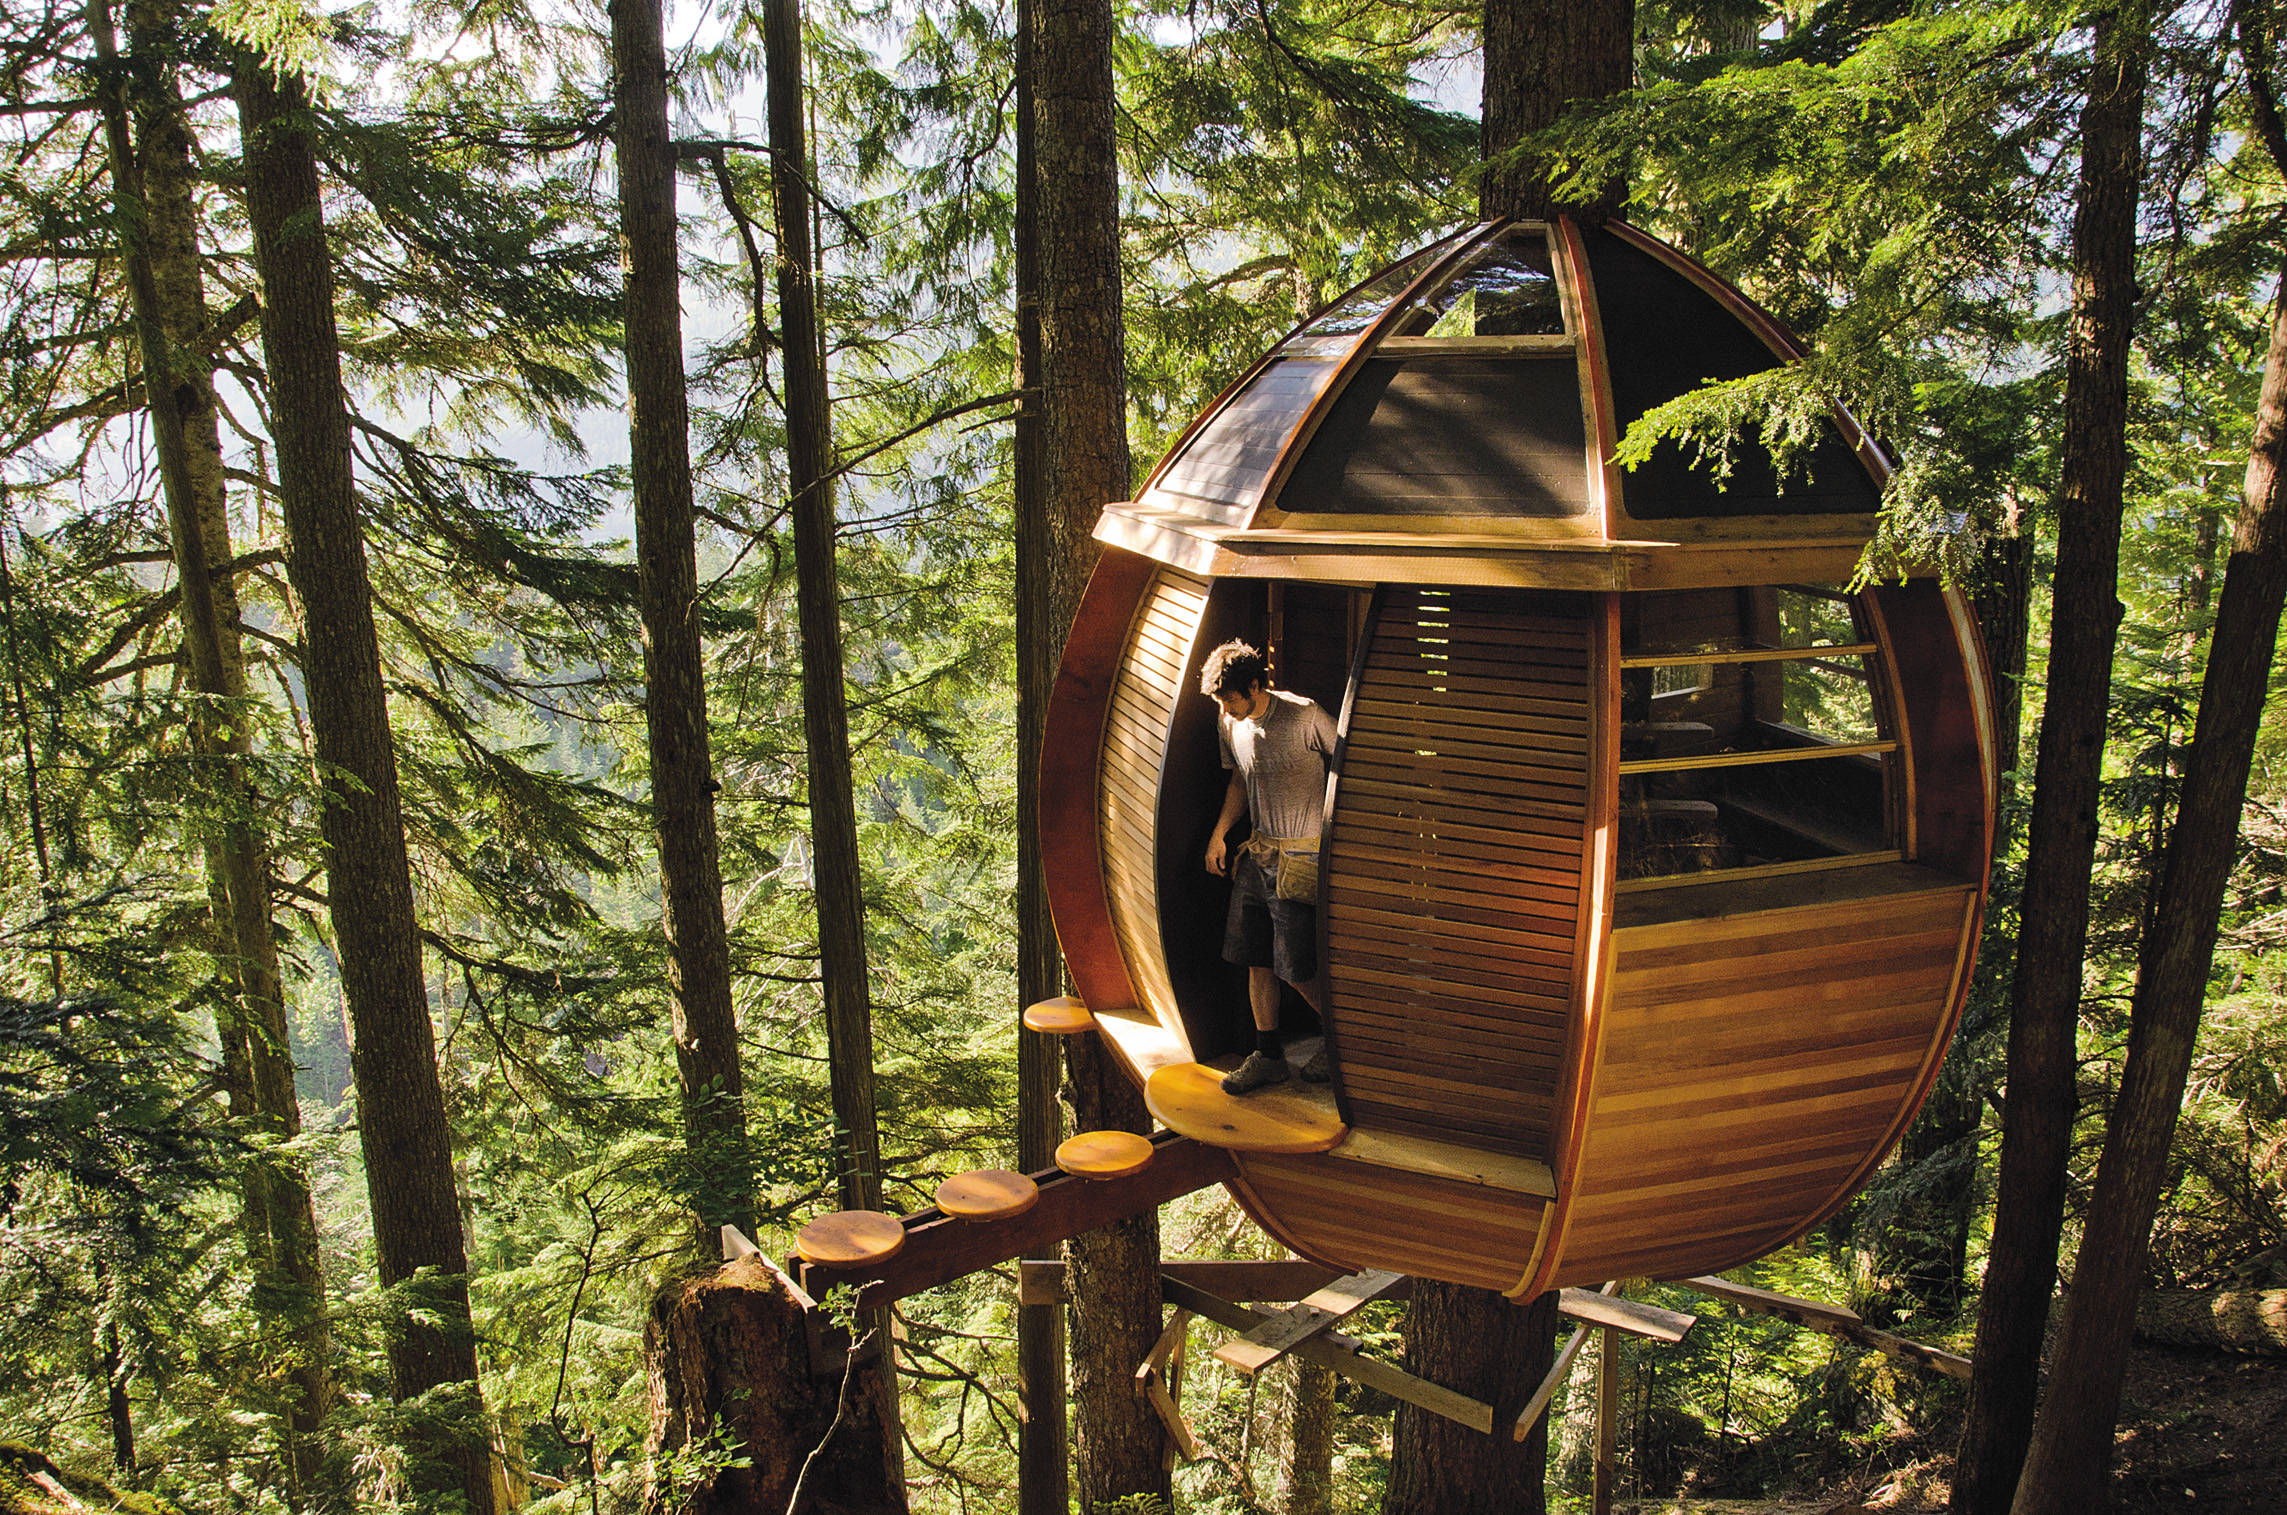 13 of the worlds coolest treehouses - Treehouse Masters Tree Houses Inside